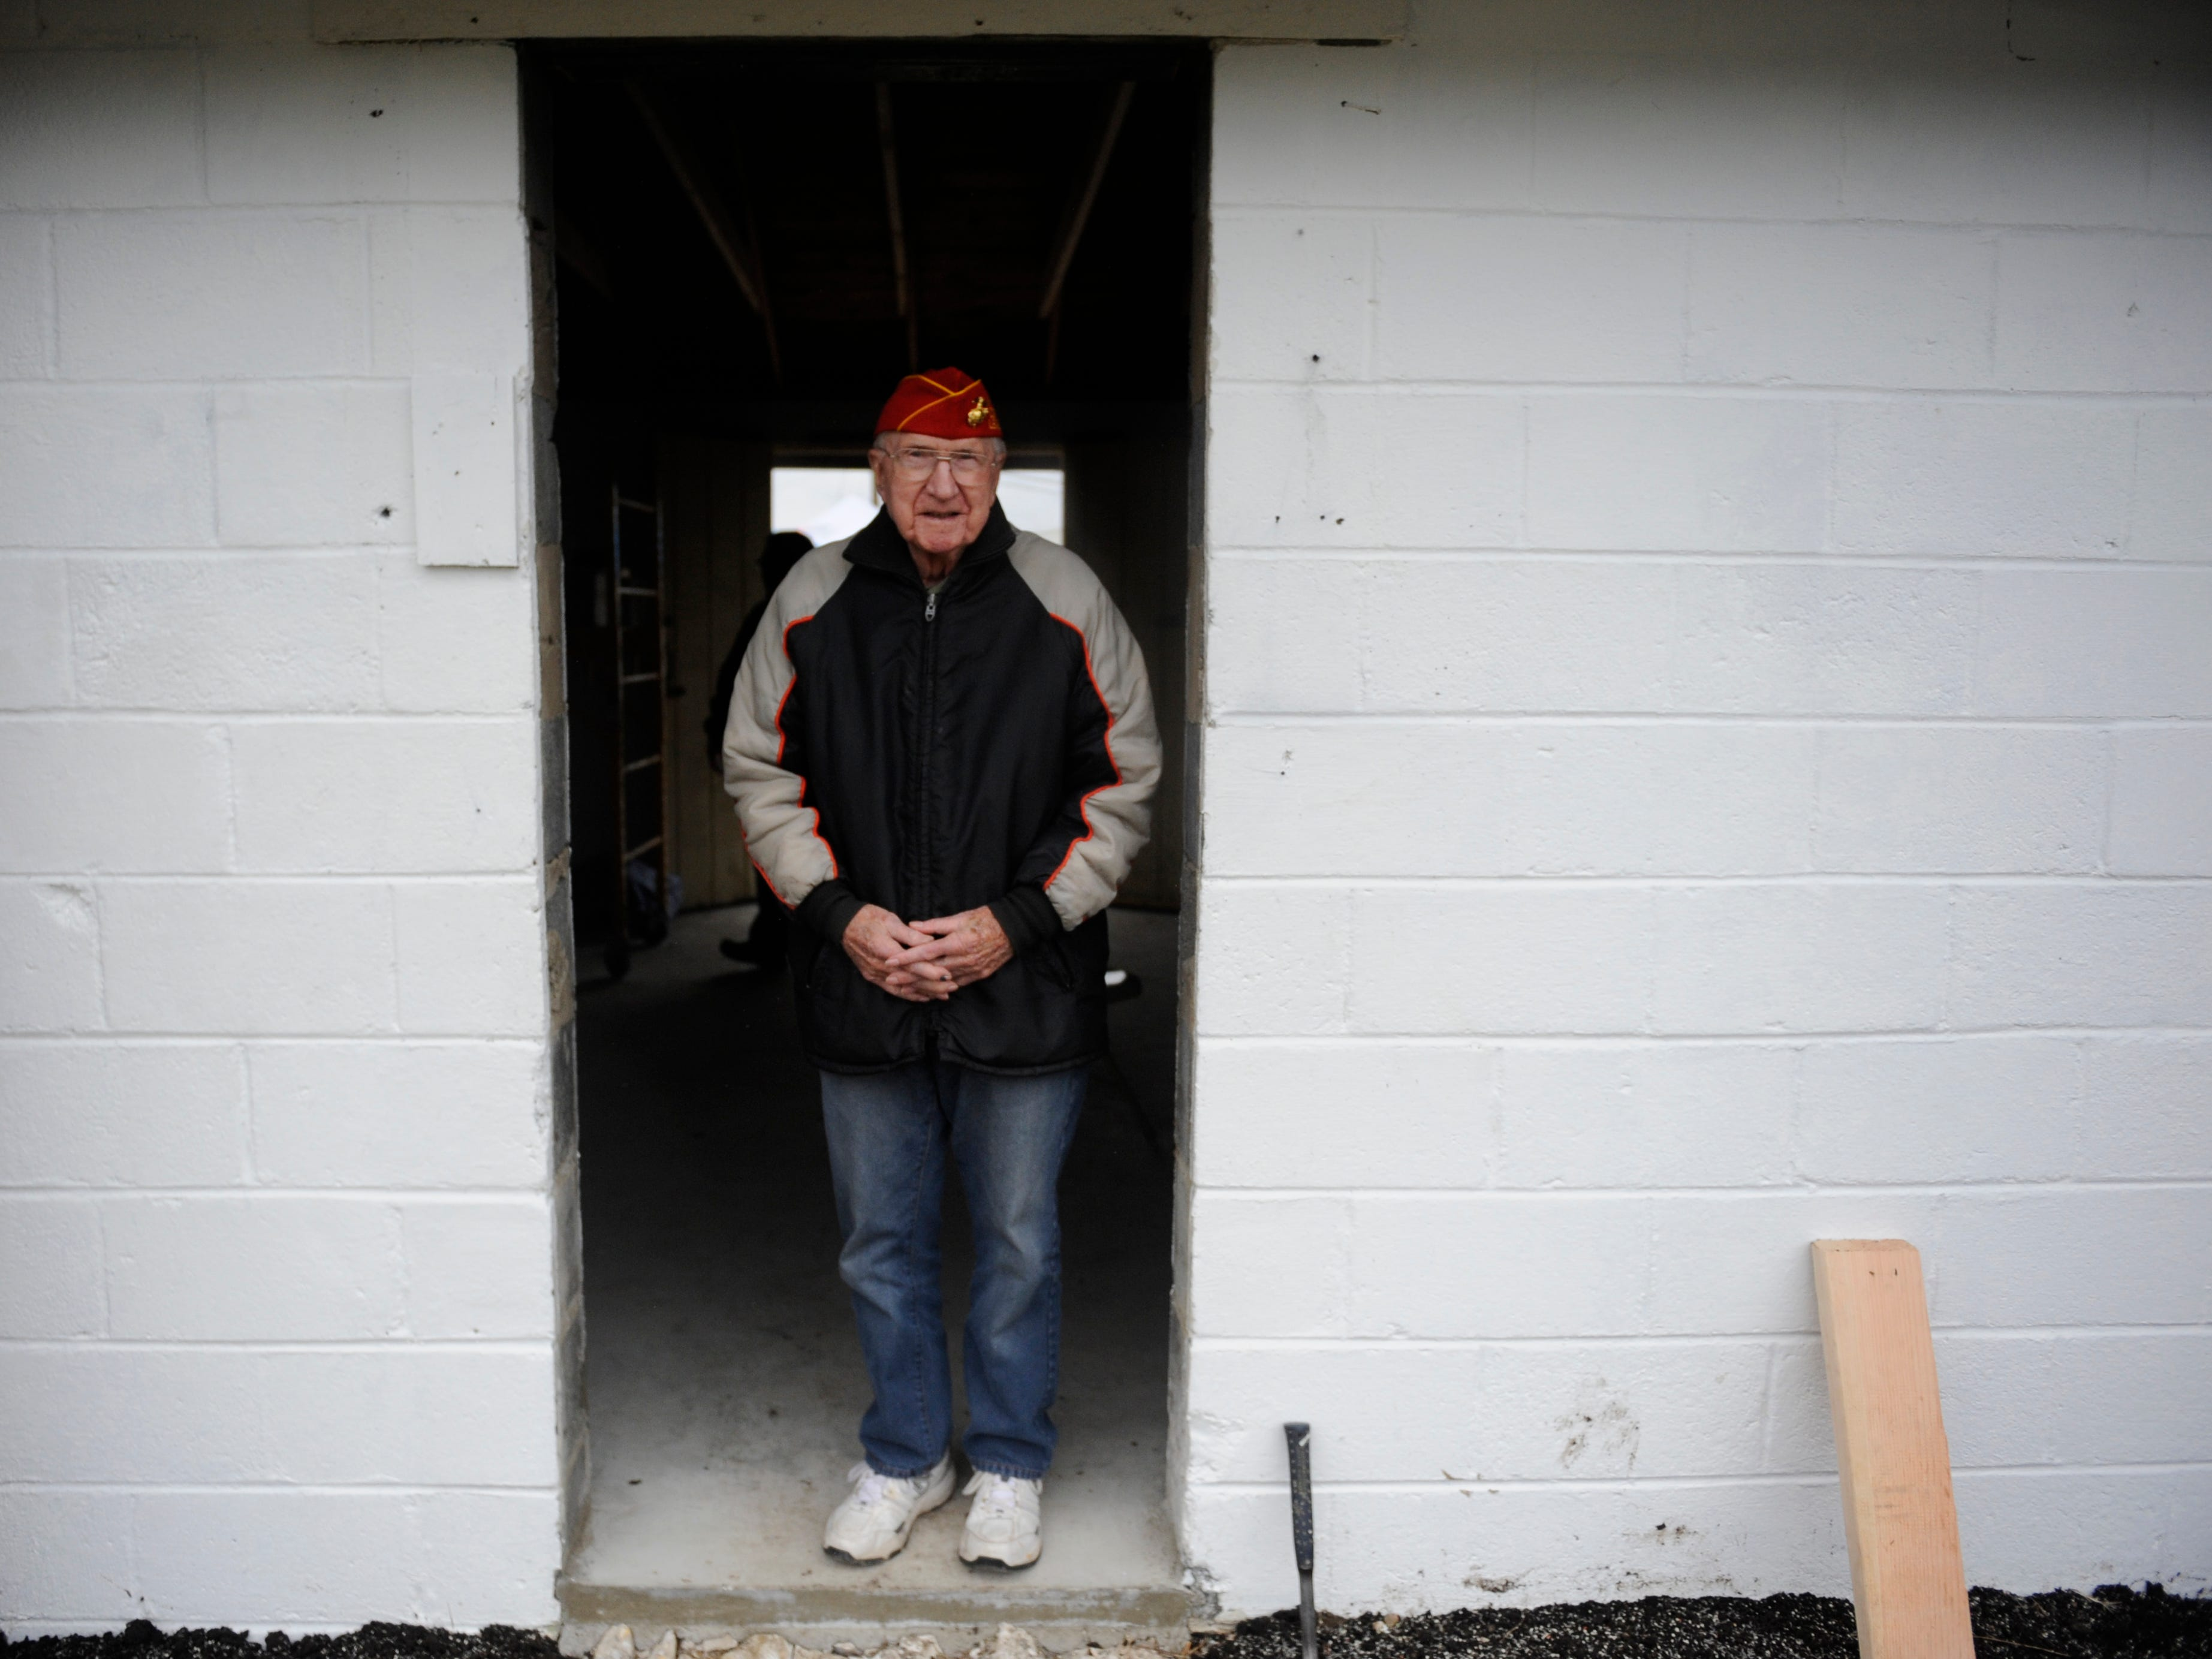 Walter S. Kocielski, a 92-year-old WWII Marine Veteran and Millville Army Airfield Museum volunteer watches the Home Depot team help renovate a building during a special event on Friday, November 9, 2018.